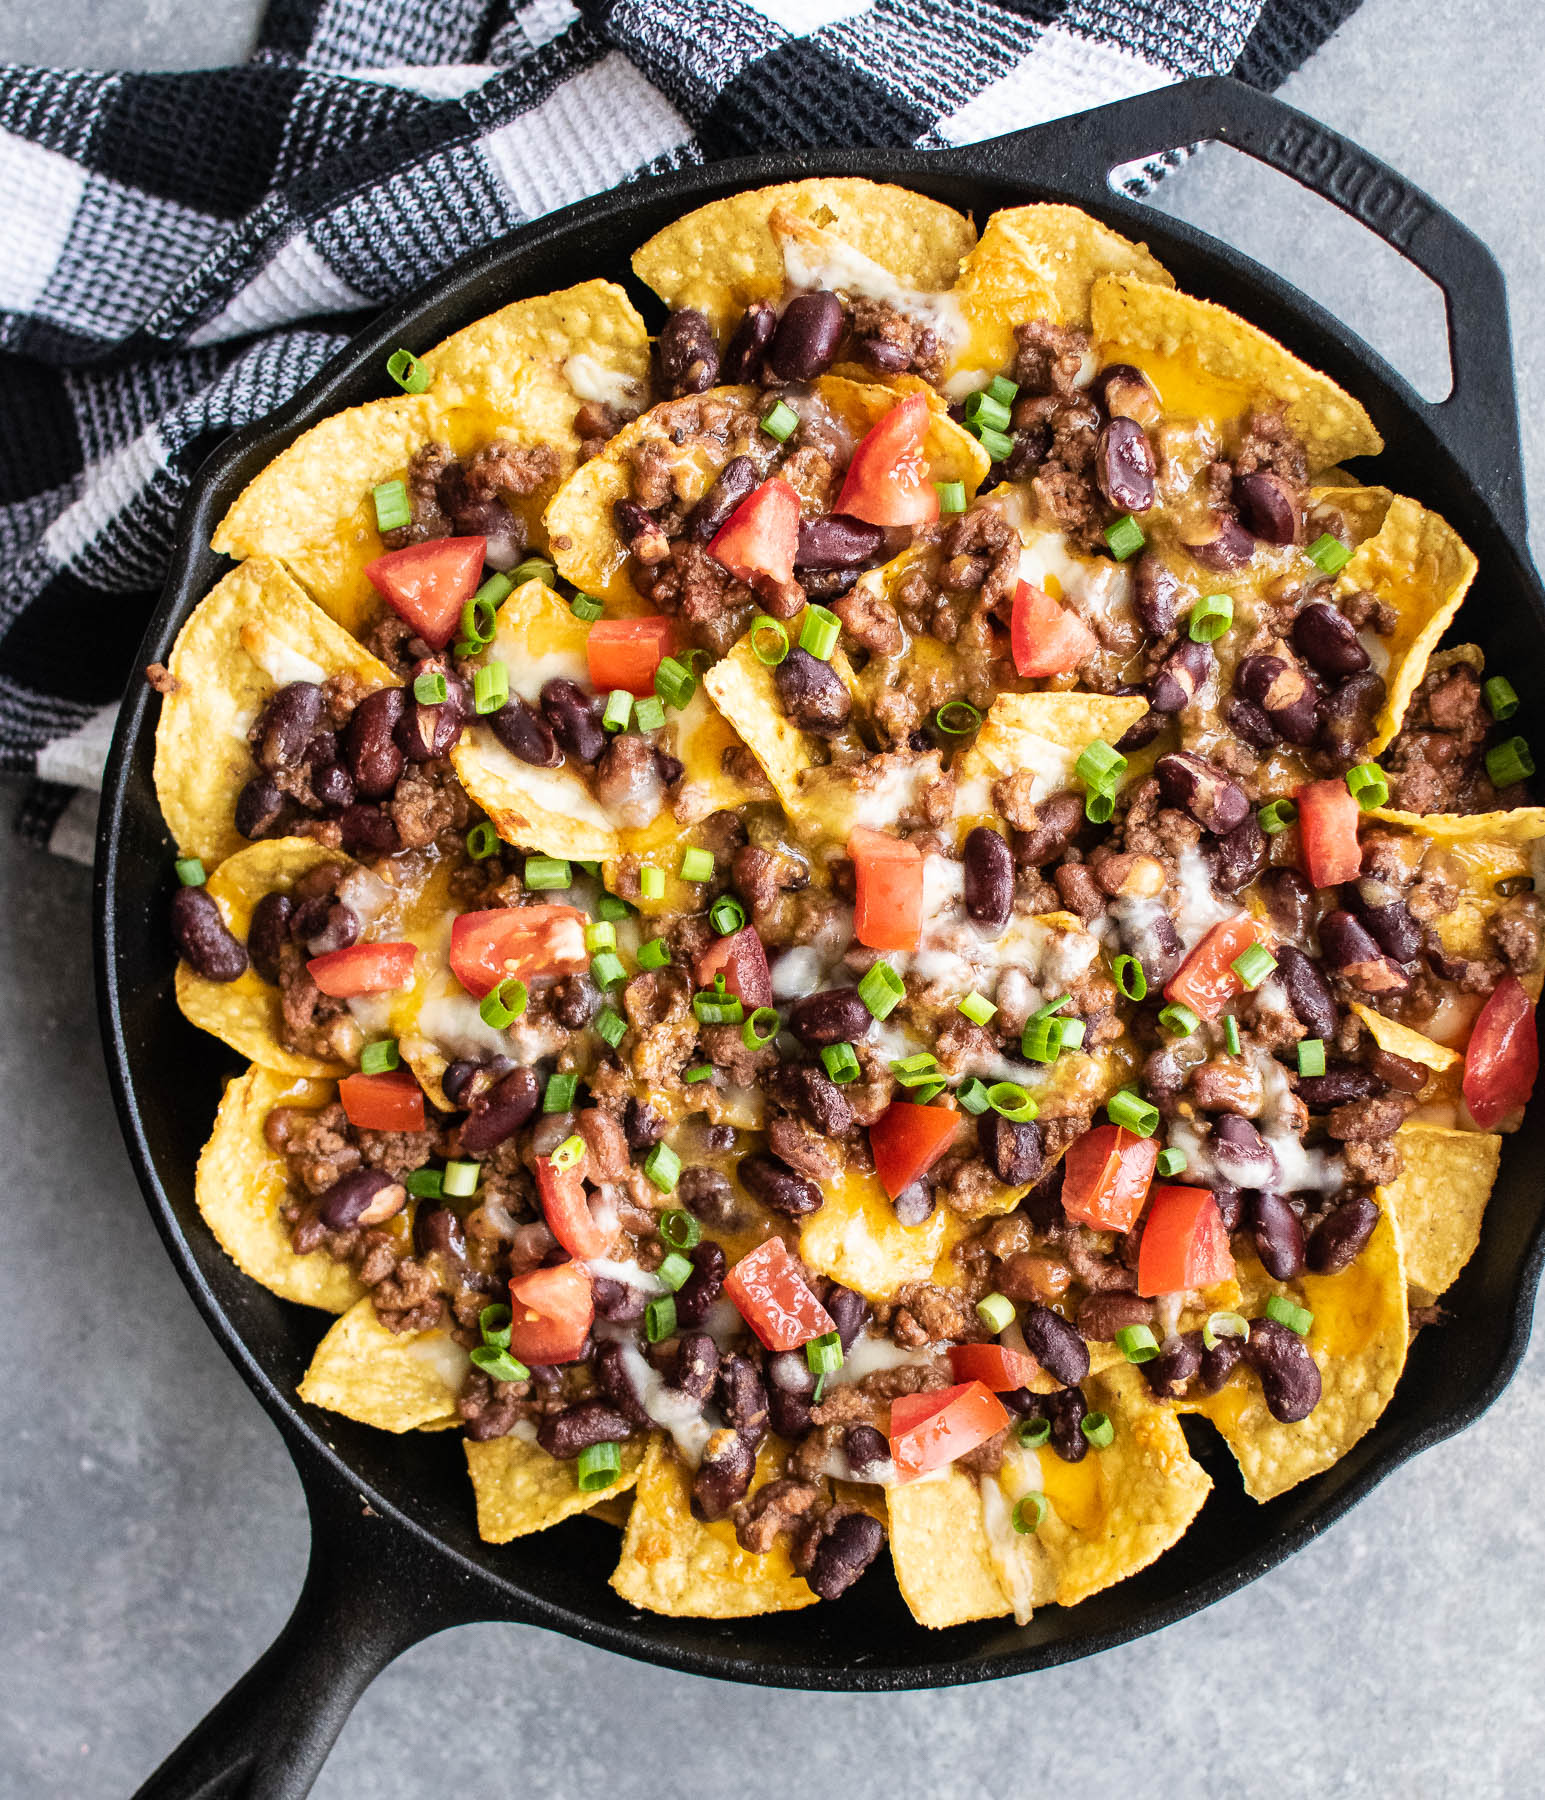 Creative DIY dinner ideas: Make your own nachos, like these baked chili nachos at Carolyn's Cooking.